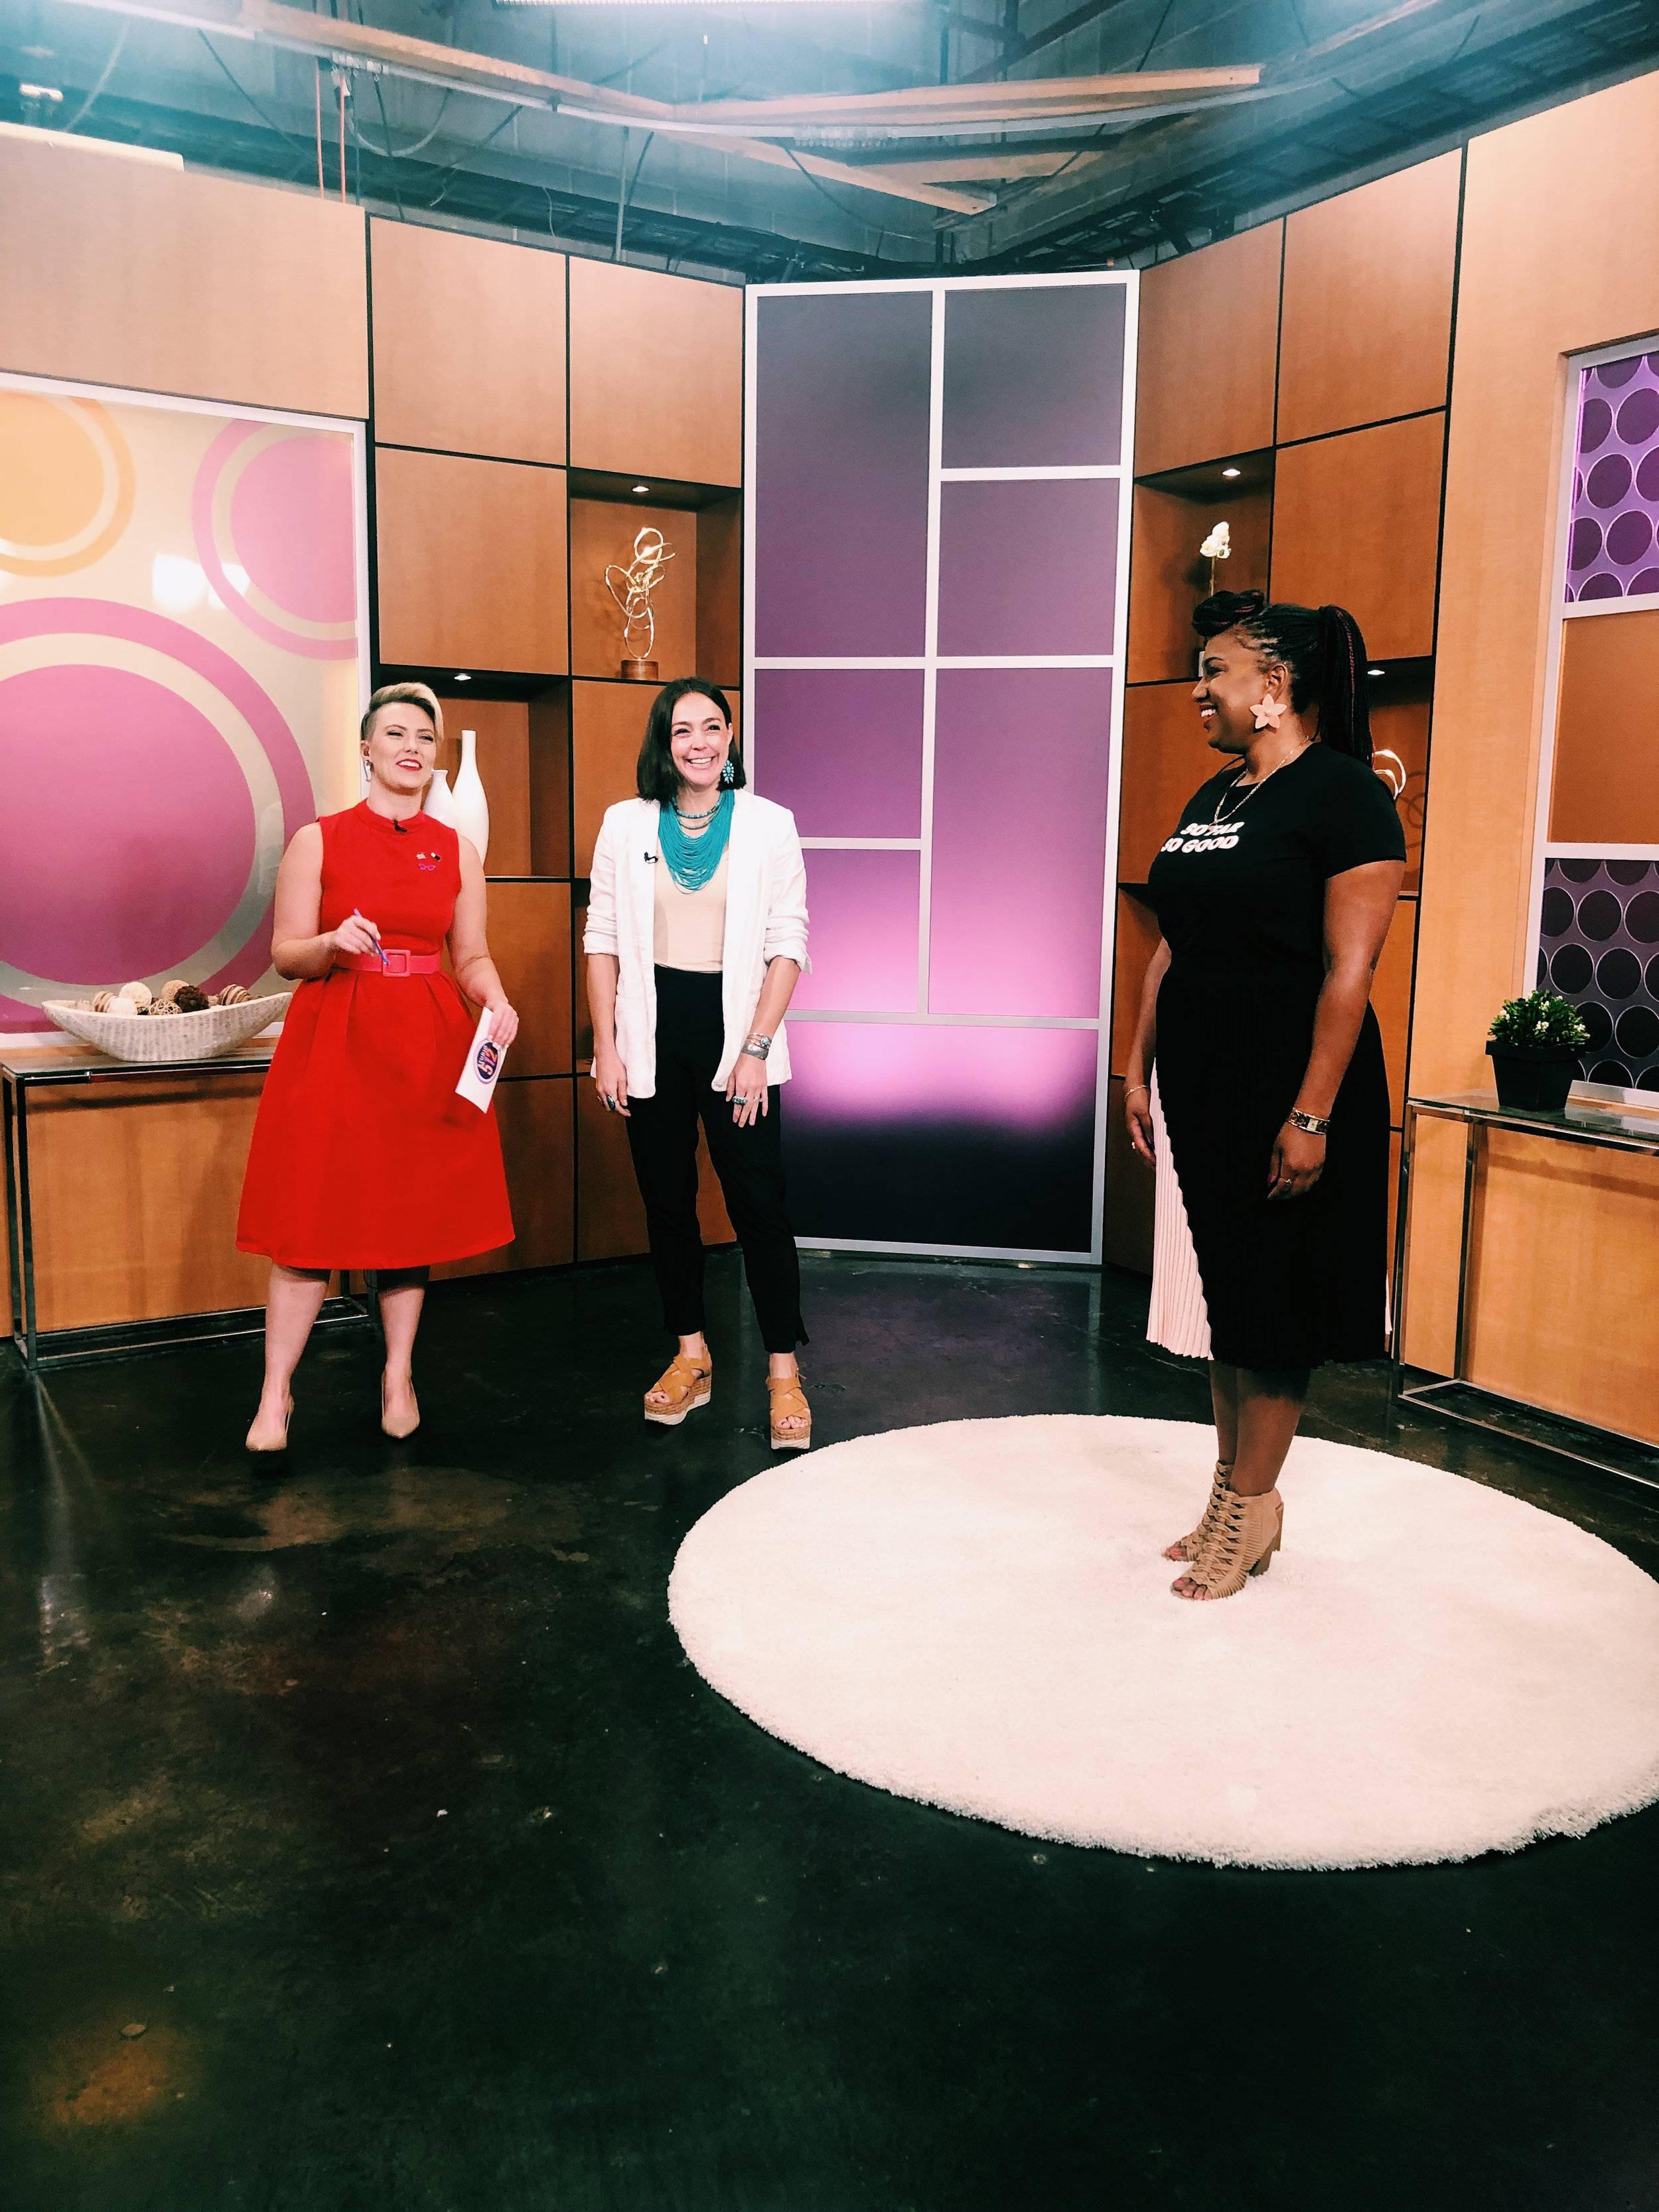 Raquel Greer Gordian visits Studio 512 to chat all about how to survive the summer heat at work in style. Whether you're a woman who loves to wear dresses, skirts, or pants, Raquel has fresh ideas and easy tips to try with your work wardrobe all summer.